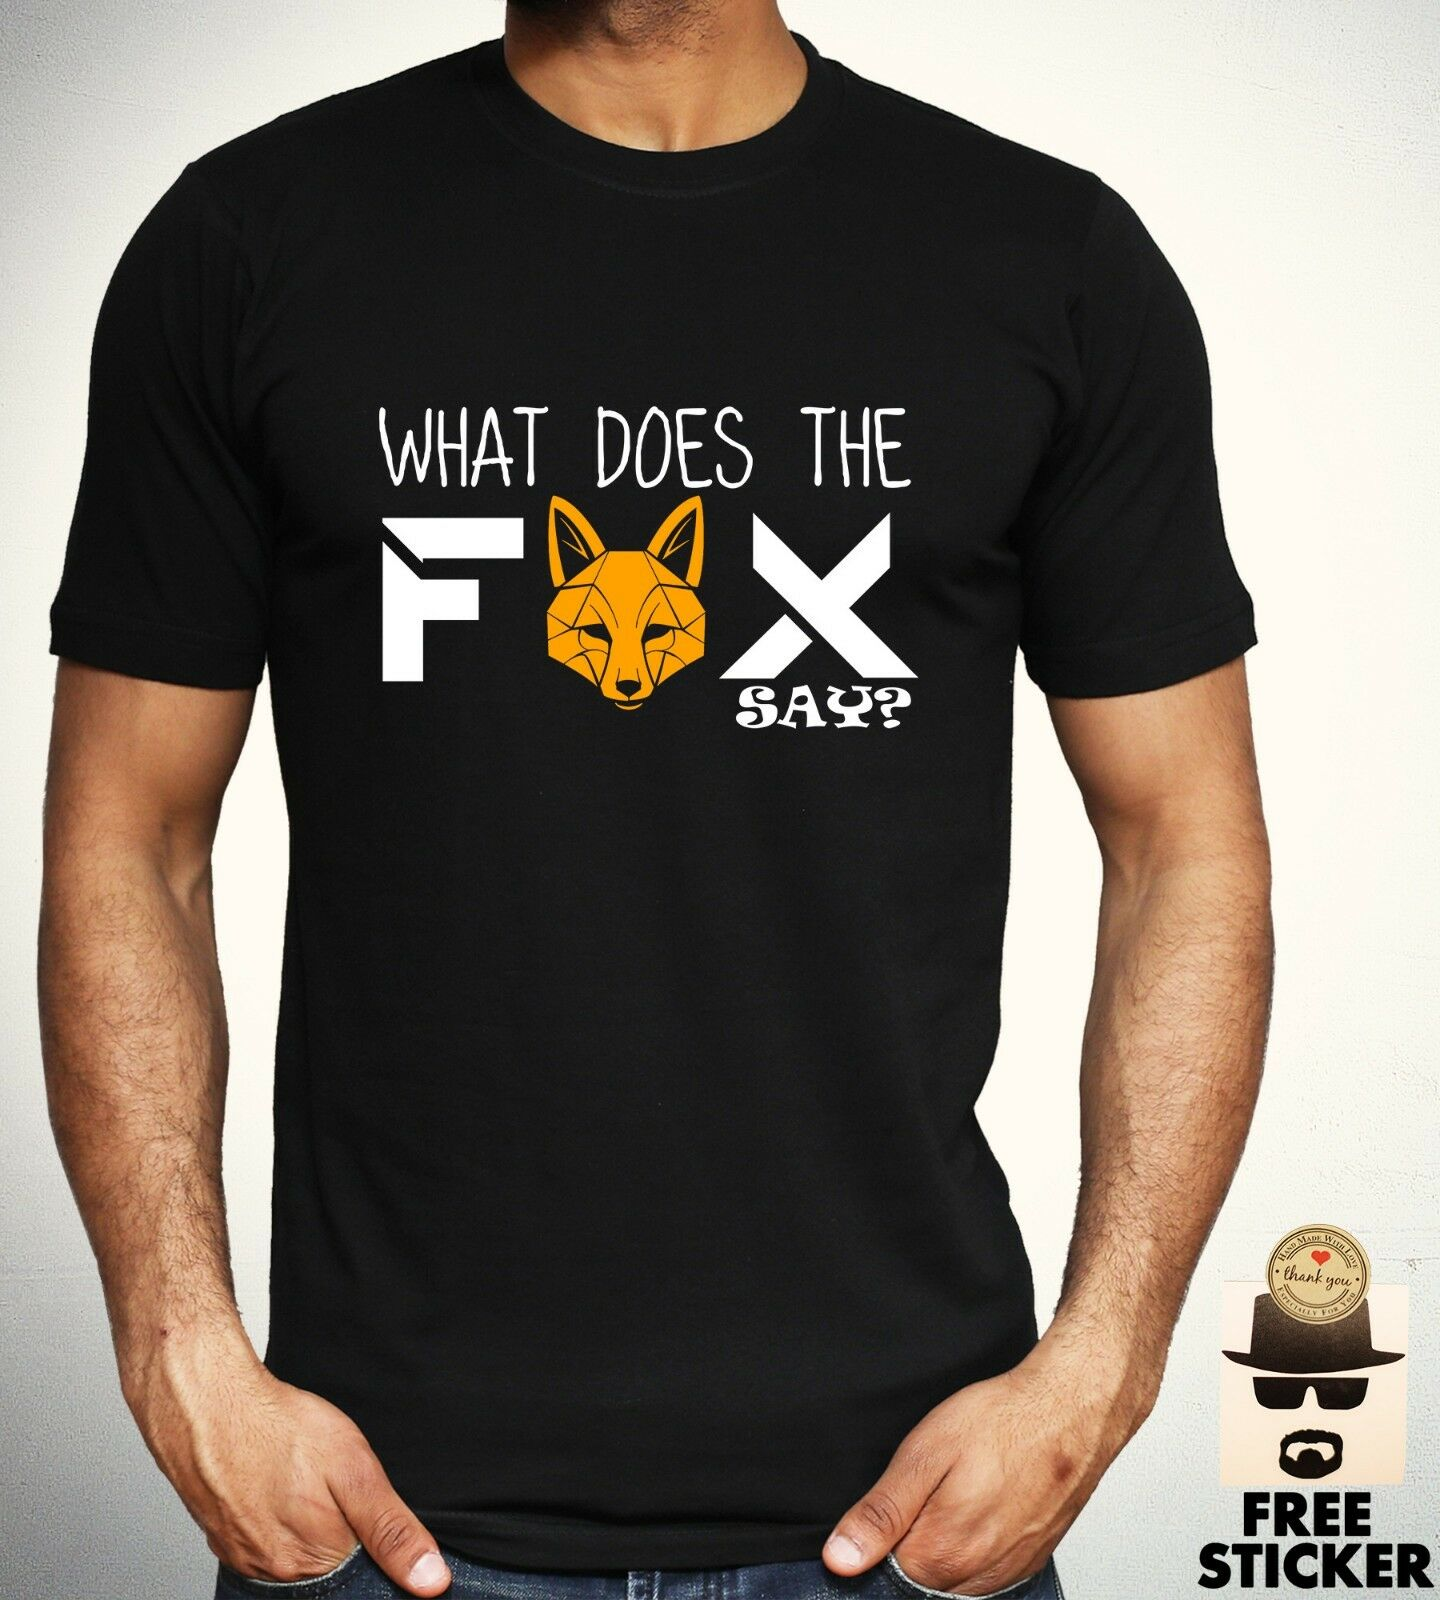 What Does The Fox Say T shirt Funny <font><b>Viral</b></font> Meme Tee Cool Gift Top Mens S - 3XL Men Women Unisex Fashion tshirt Free Shipping image